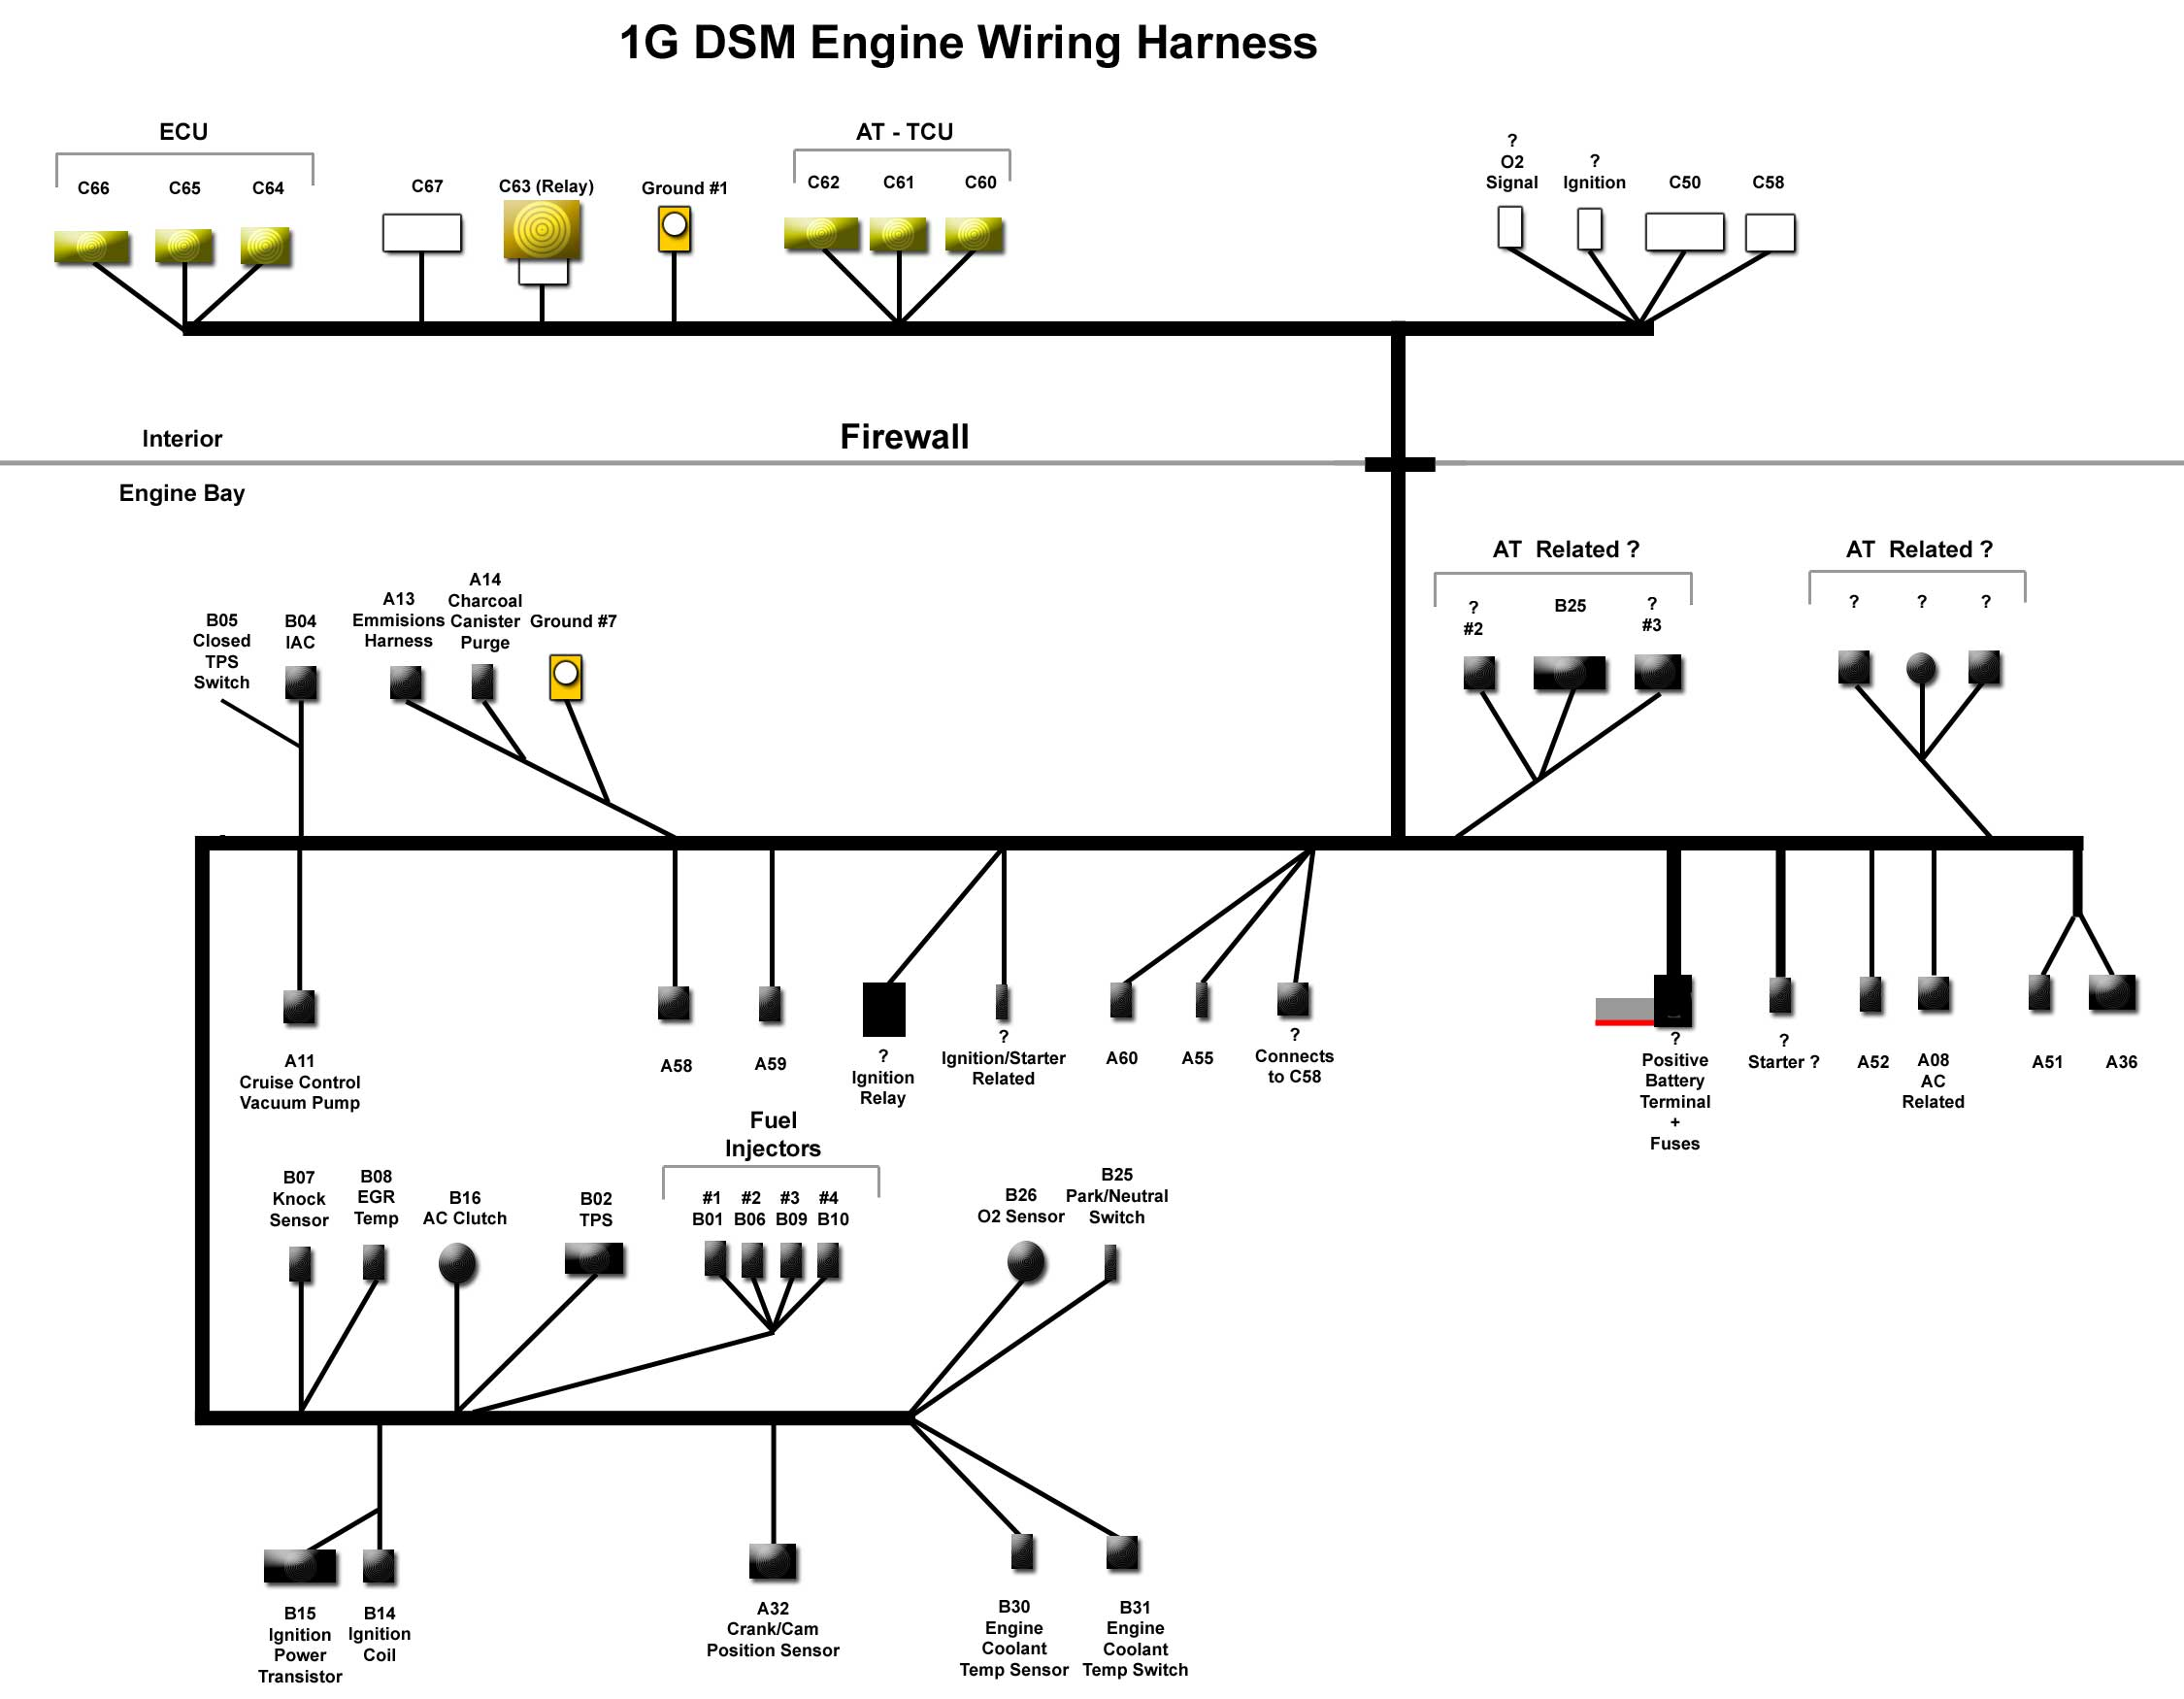 1Gb DSM 4G63 Turbo    Wiring       Harness       Diagram